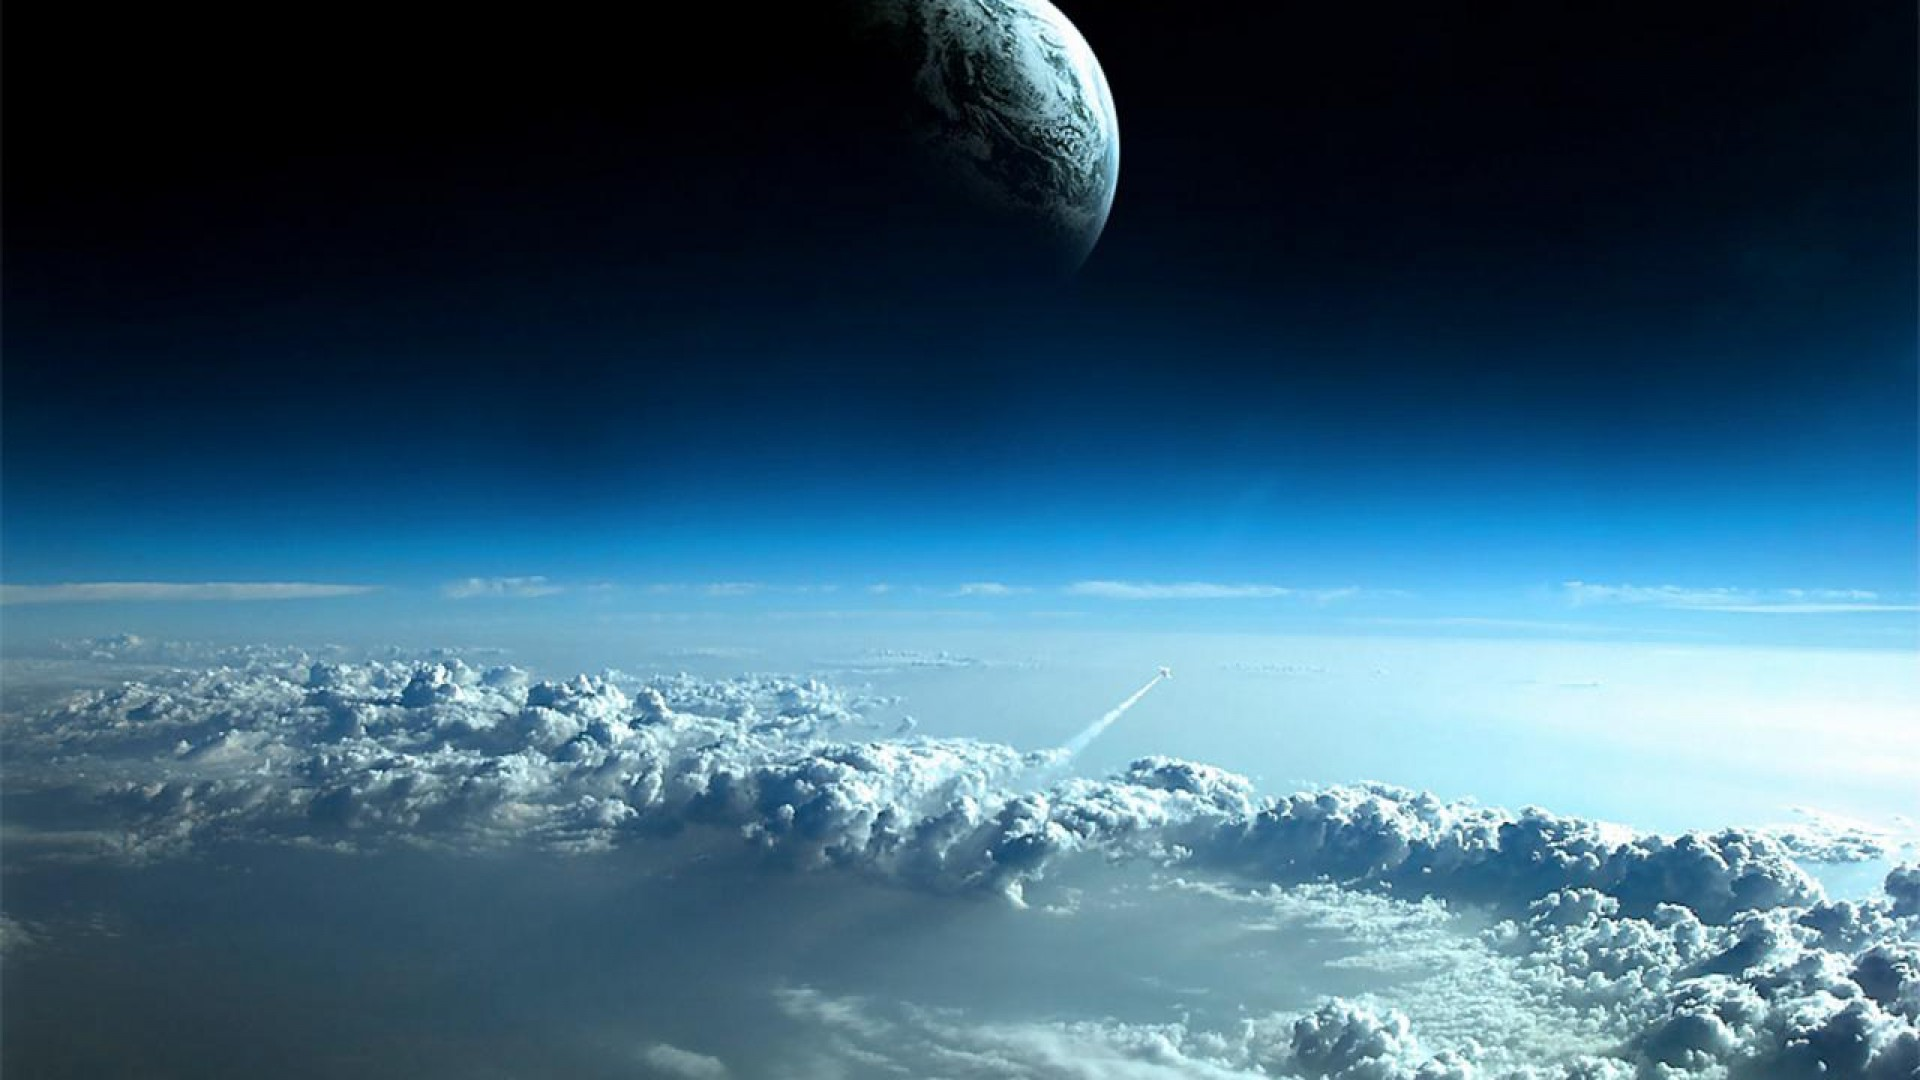 Windows Backgrounds Windows 10 Space Backgrounds